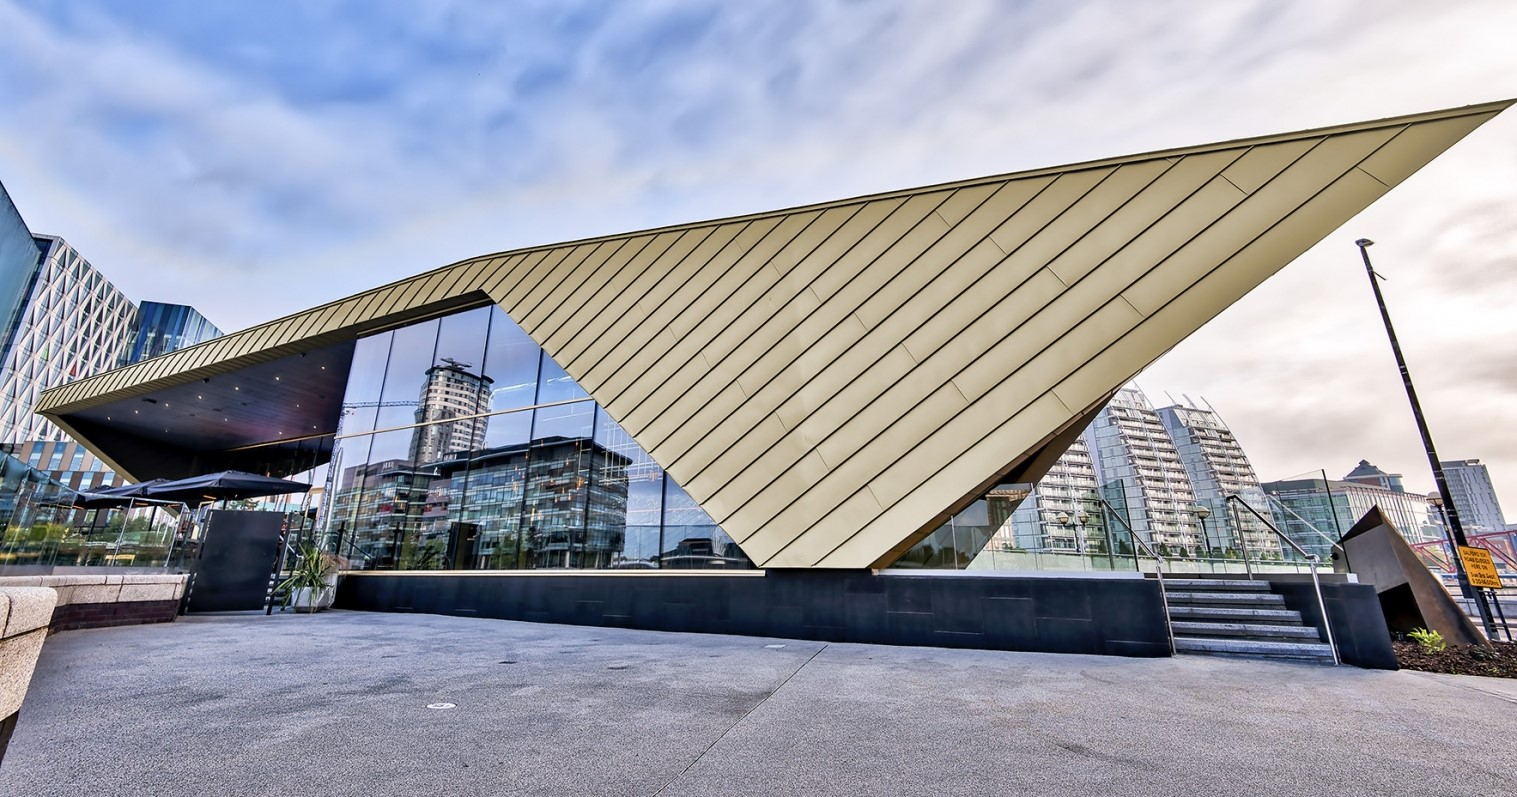 Three Benefits Of Zinc Roofing And Cladding By Longworth